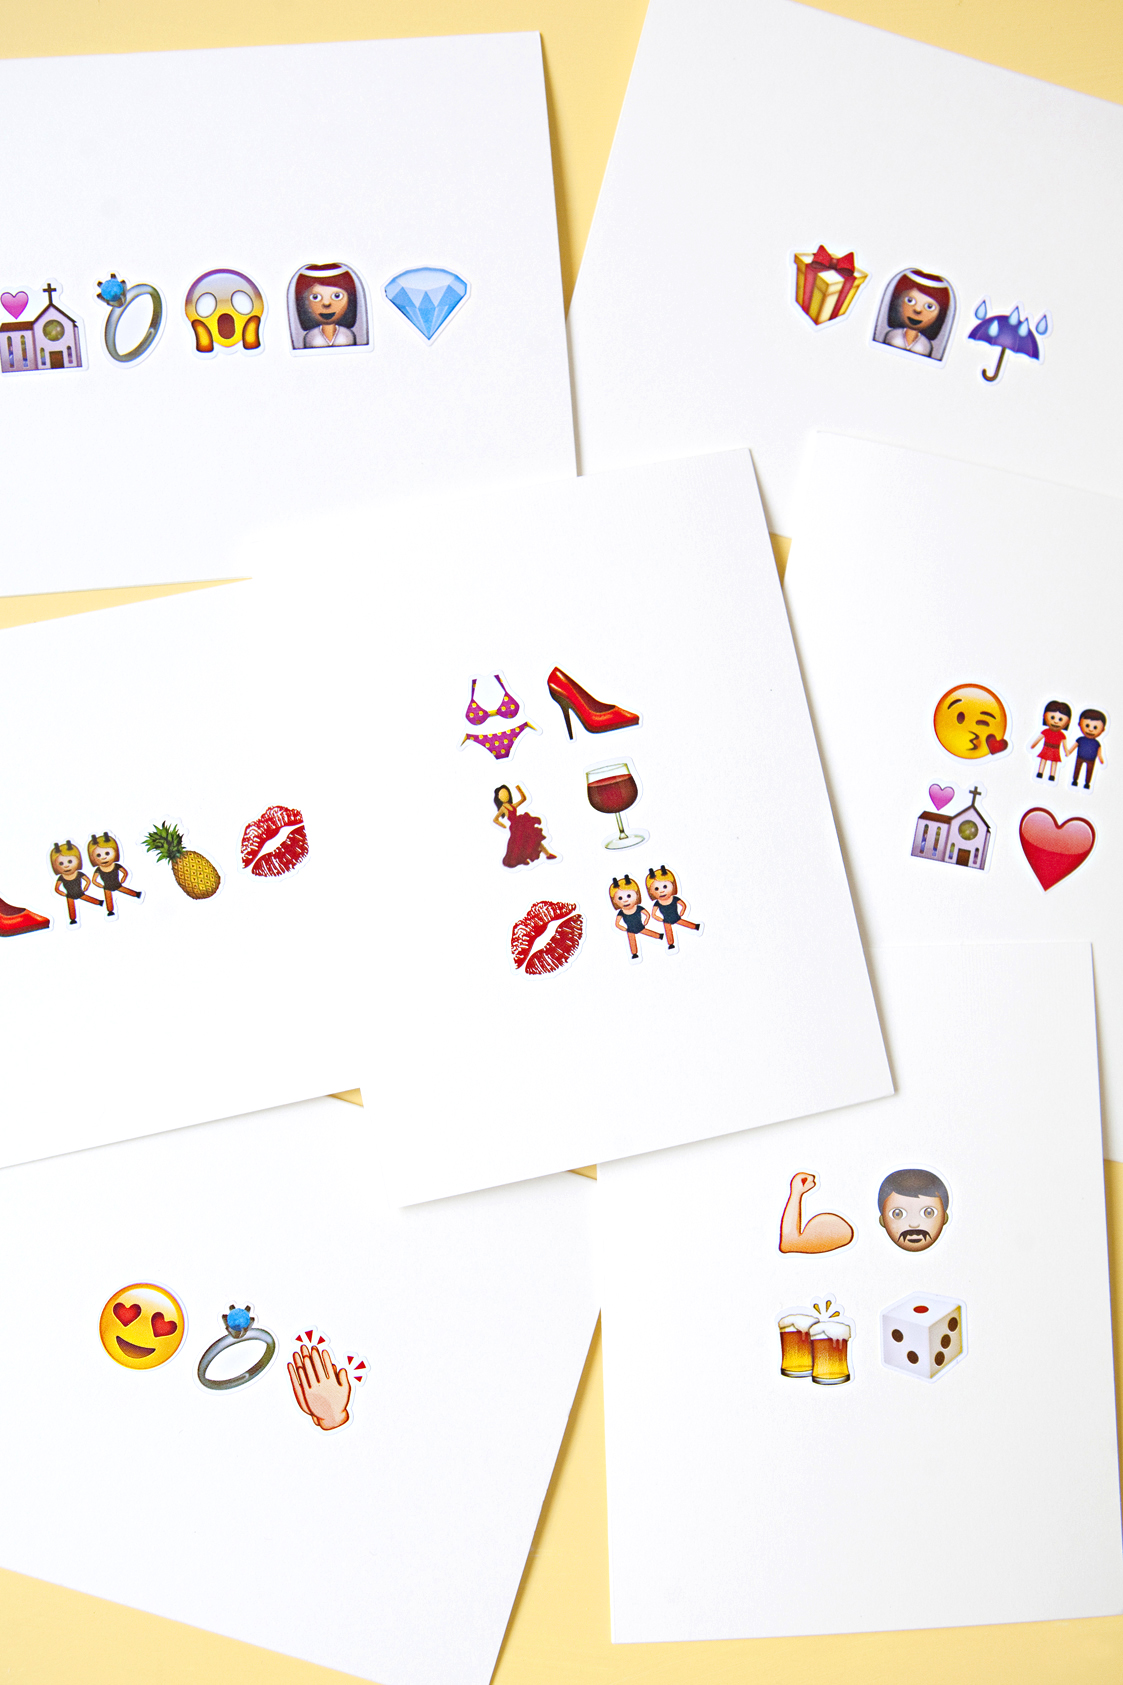 Awesome DIY Emoji Greeting Cards for Weddings